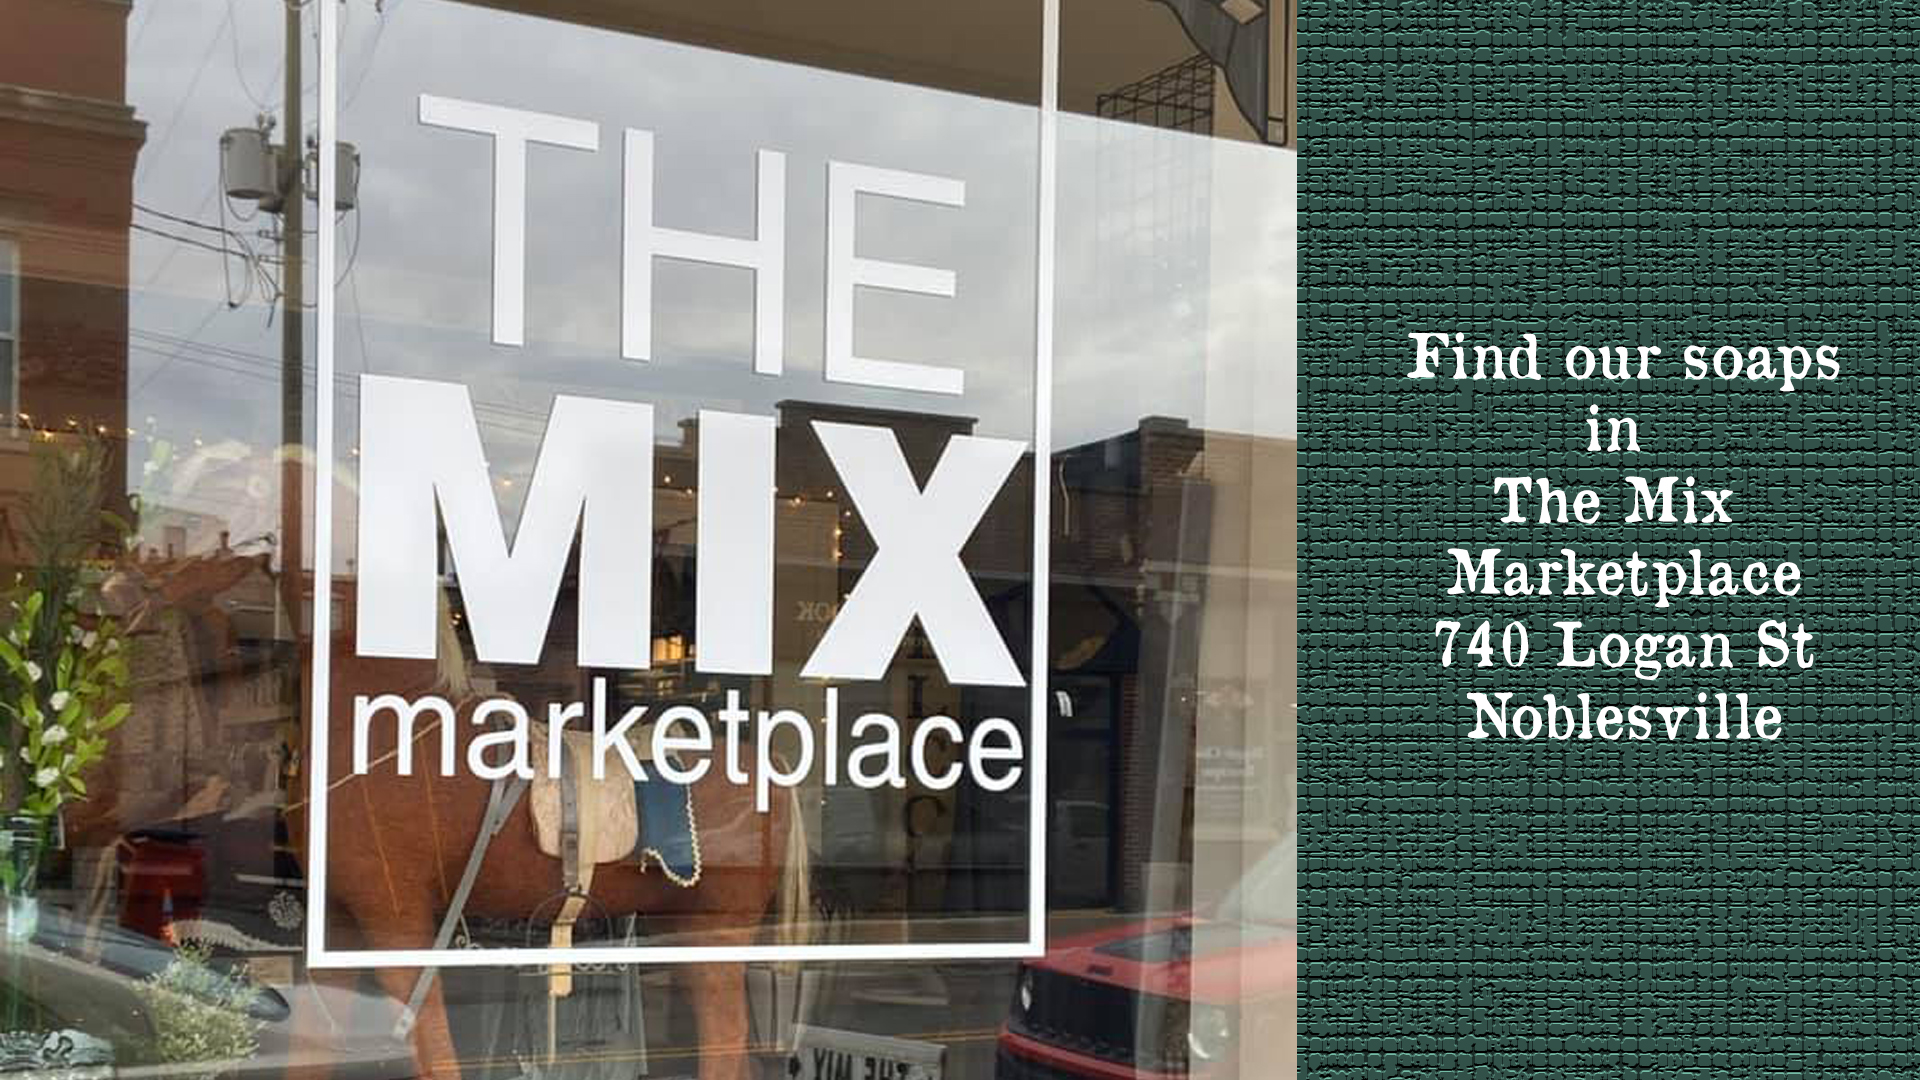 <h2>Find Us at The Mix</h2><div class='slide-content'><p><span class='highlight'>You can find us at The Mix Marketplace </span></p><p><span class='highlight'>located in Noblesville, Indiana.</span></p></div><a href='#' class='btn' title=' '> </a>